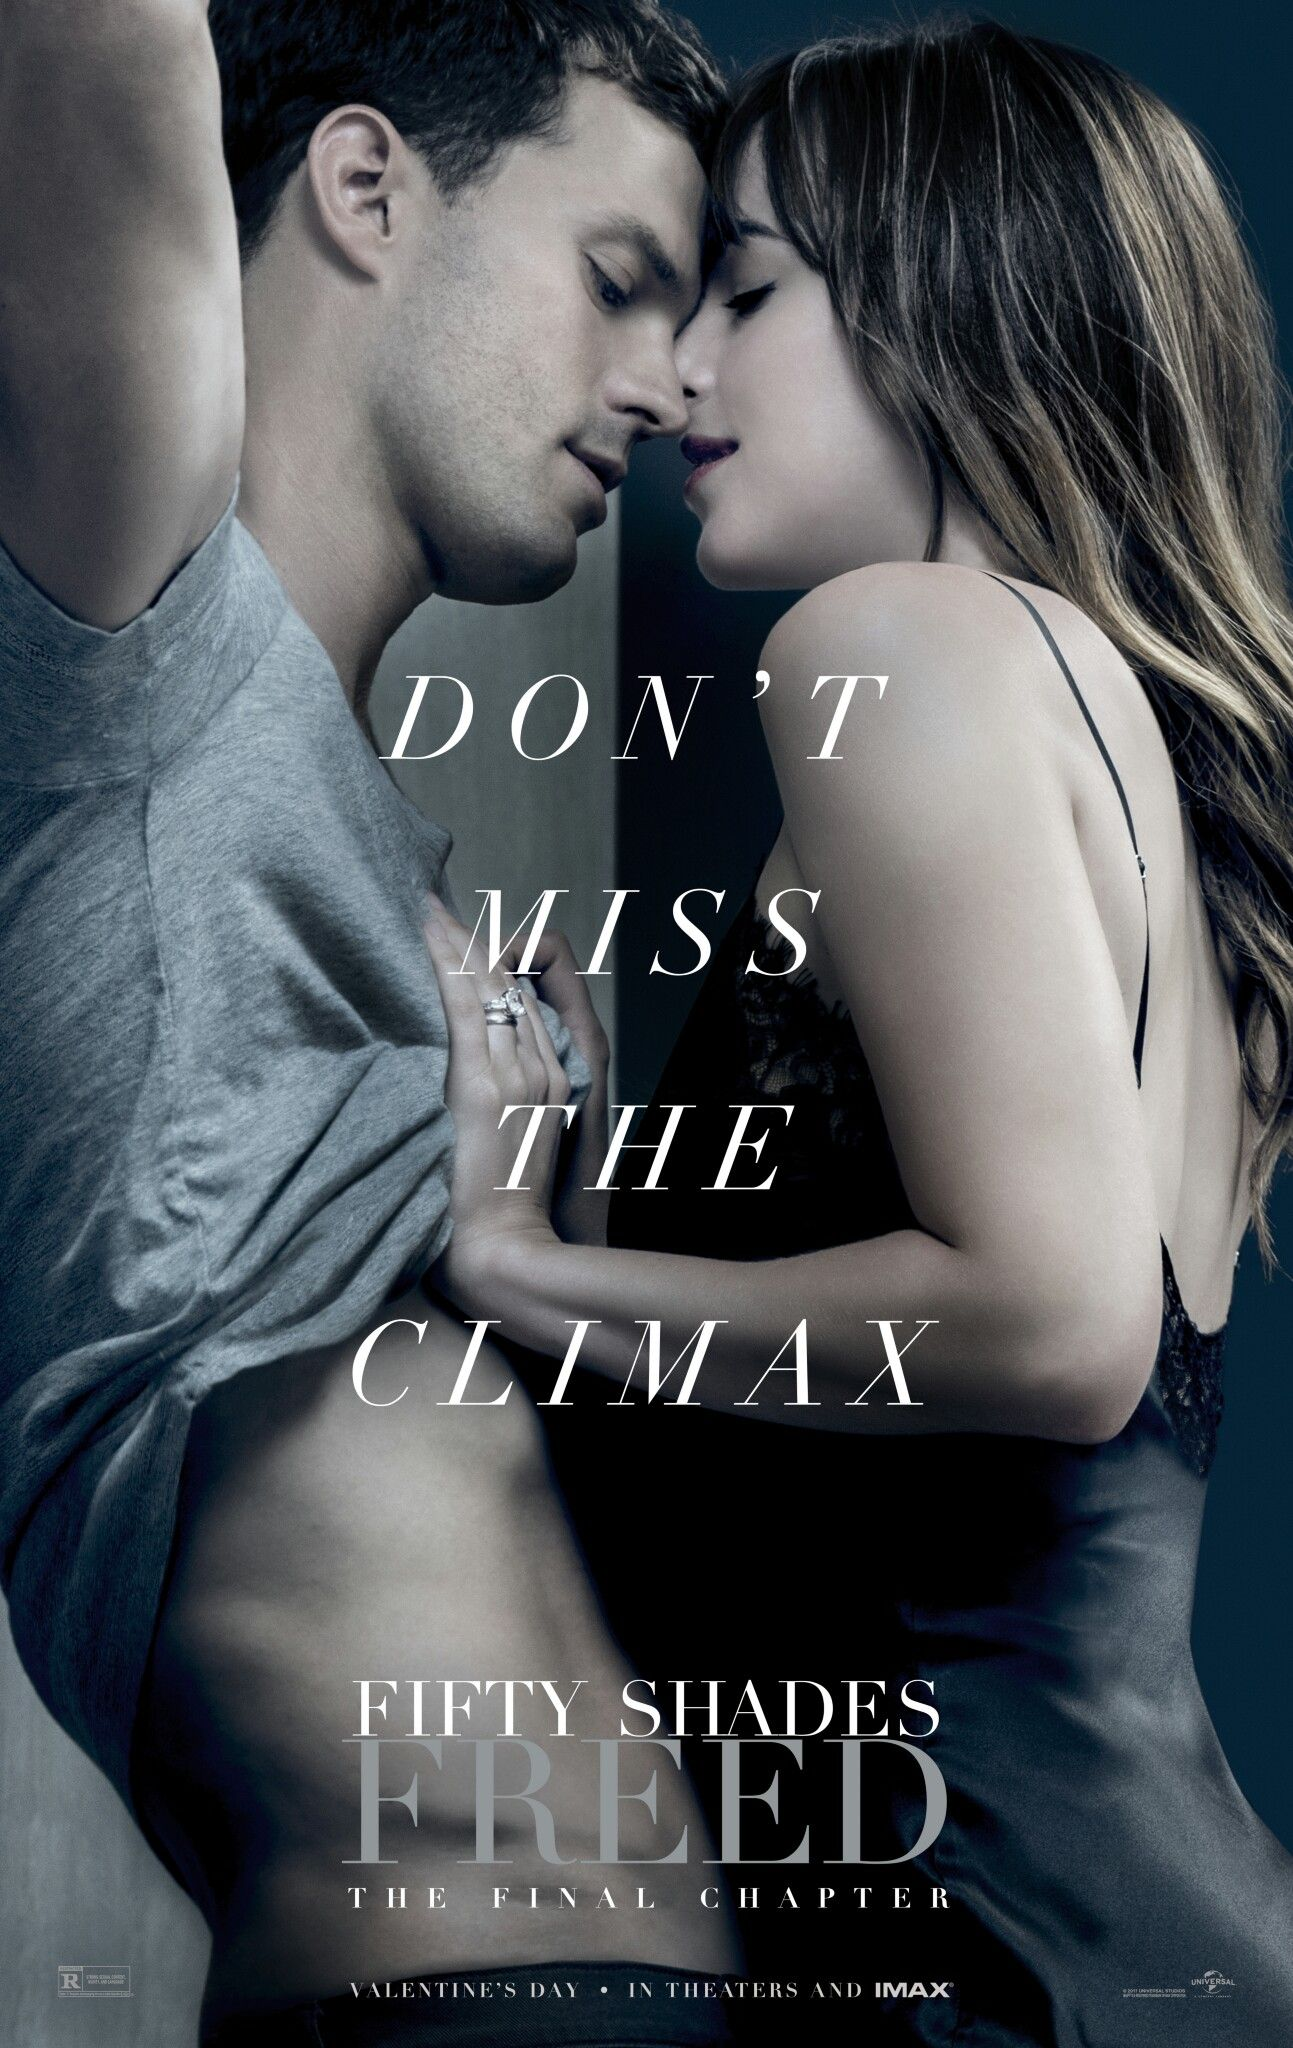 Watch Fifty Shades Freed watch a good film quality live streaming tv and  watch a movie Watch Fifty Shades Freed hd quality, full-screen image with